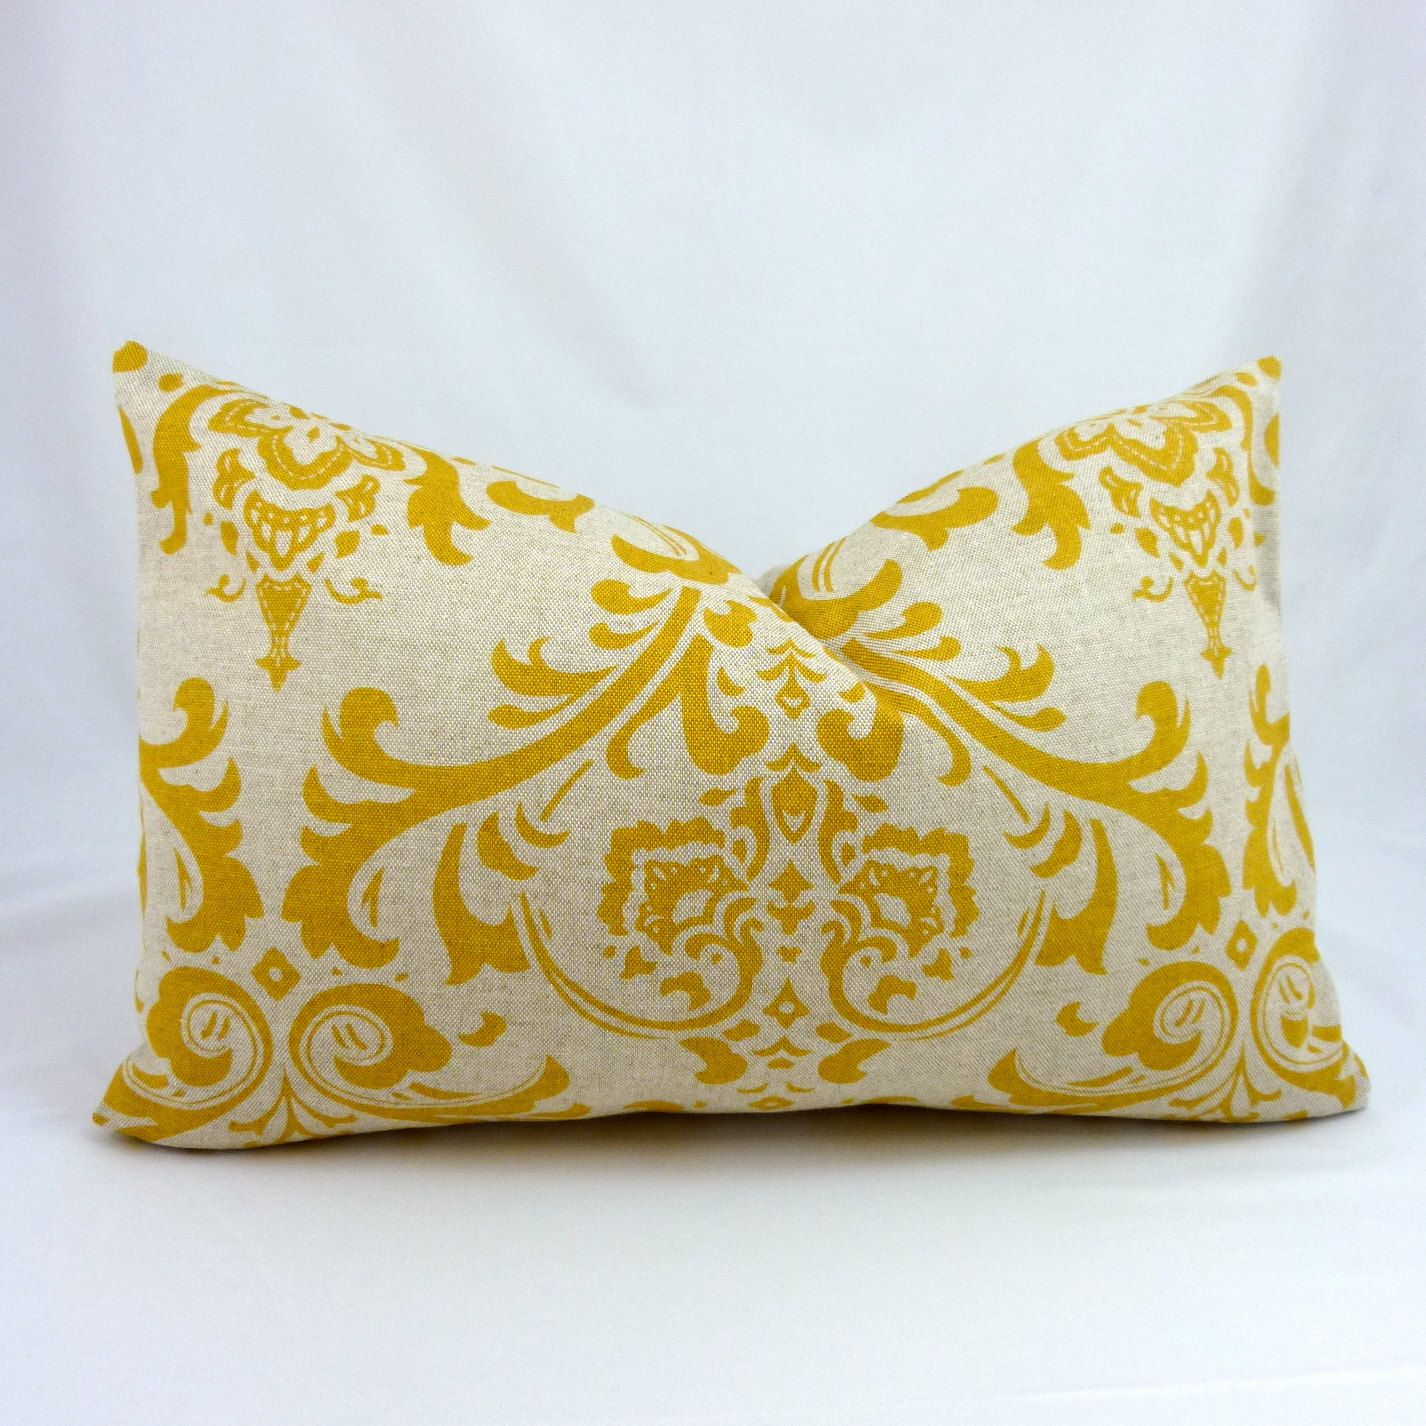 Designer Lumbar Pillow Cover in Traditions Corn Yellow - 15x15 ...